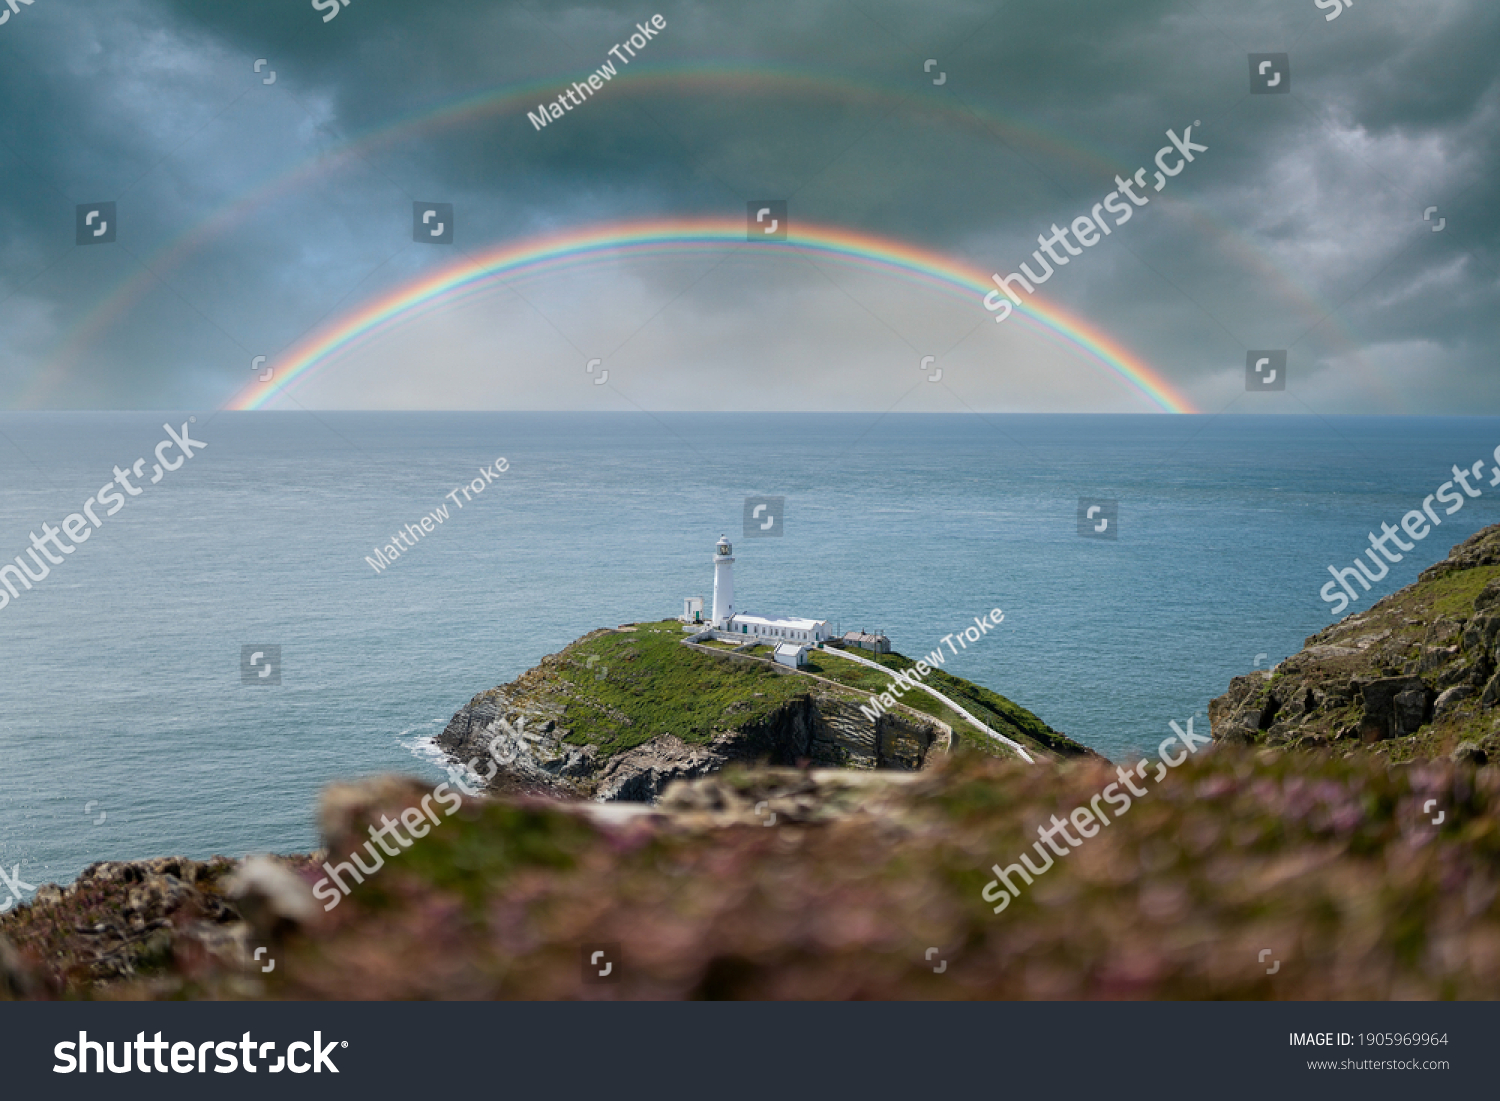 Colourful double rainbows in seascape over the ocean horizon with storm clouds dramatic sky and white lighthouse on top of island peninsular coastline in beautiful calm blue ocean sea south stack #1905969964